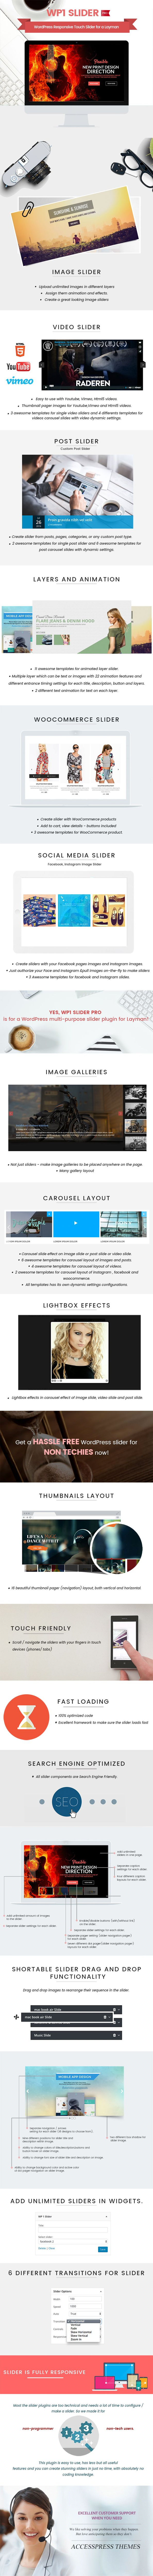 WP1 Slider Pro - WordPress Responsive Touch Slider for a Layman  - Download here : https://codecanyon.net/item/wp1-slider-pro-wordpress-responsive-touch-slider-for-a-layman/17646724?ref=pxcr